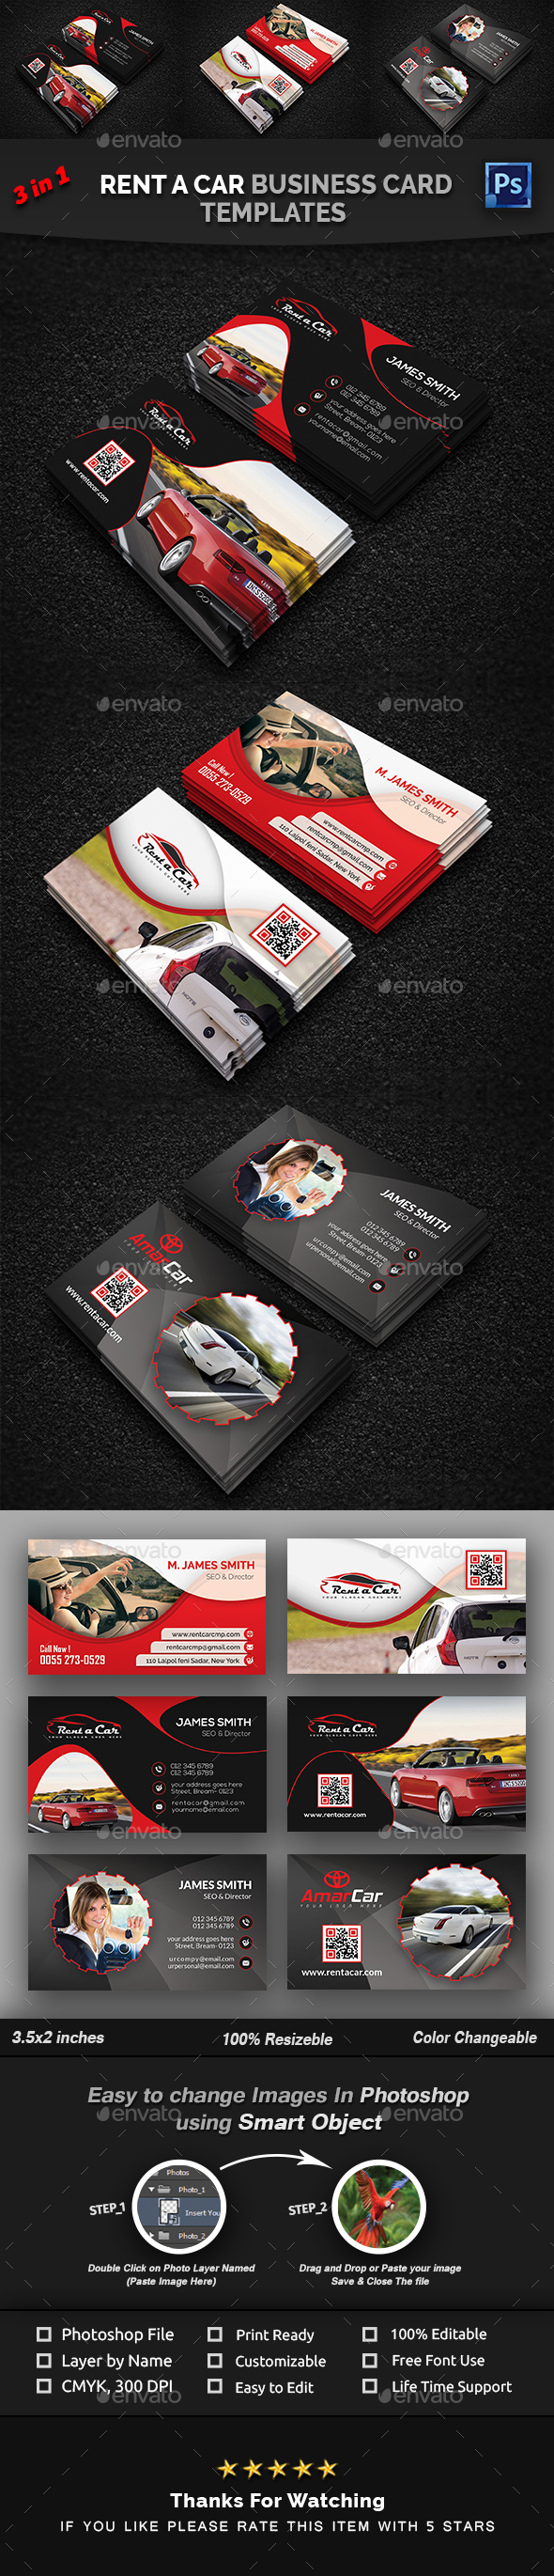 GraphicRiver Rent a Car Business Card Bundle 21043660